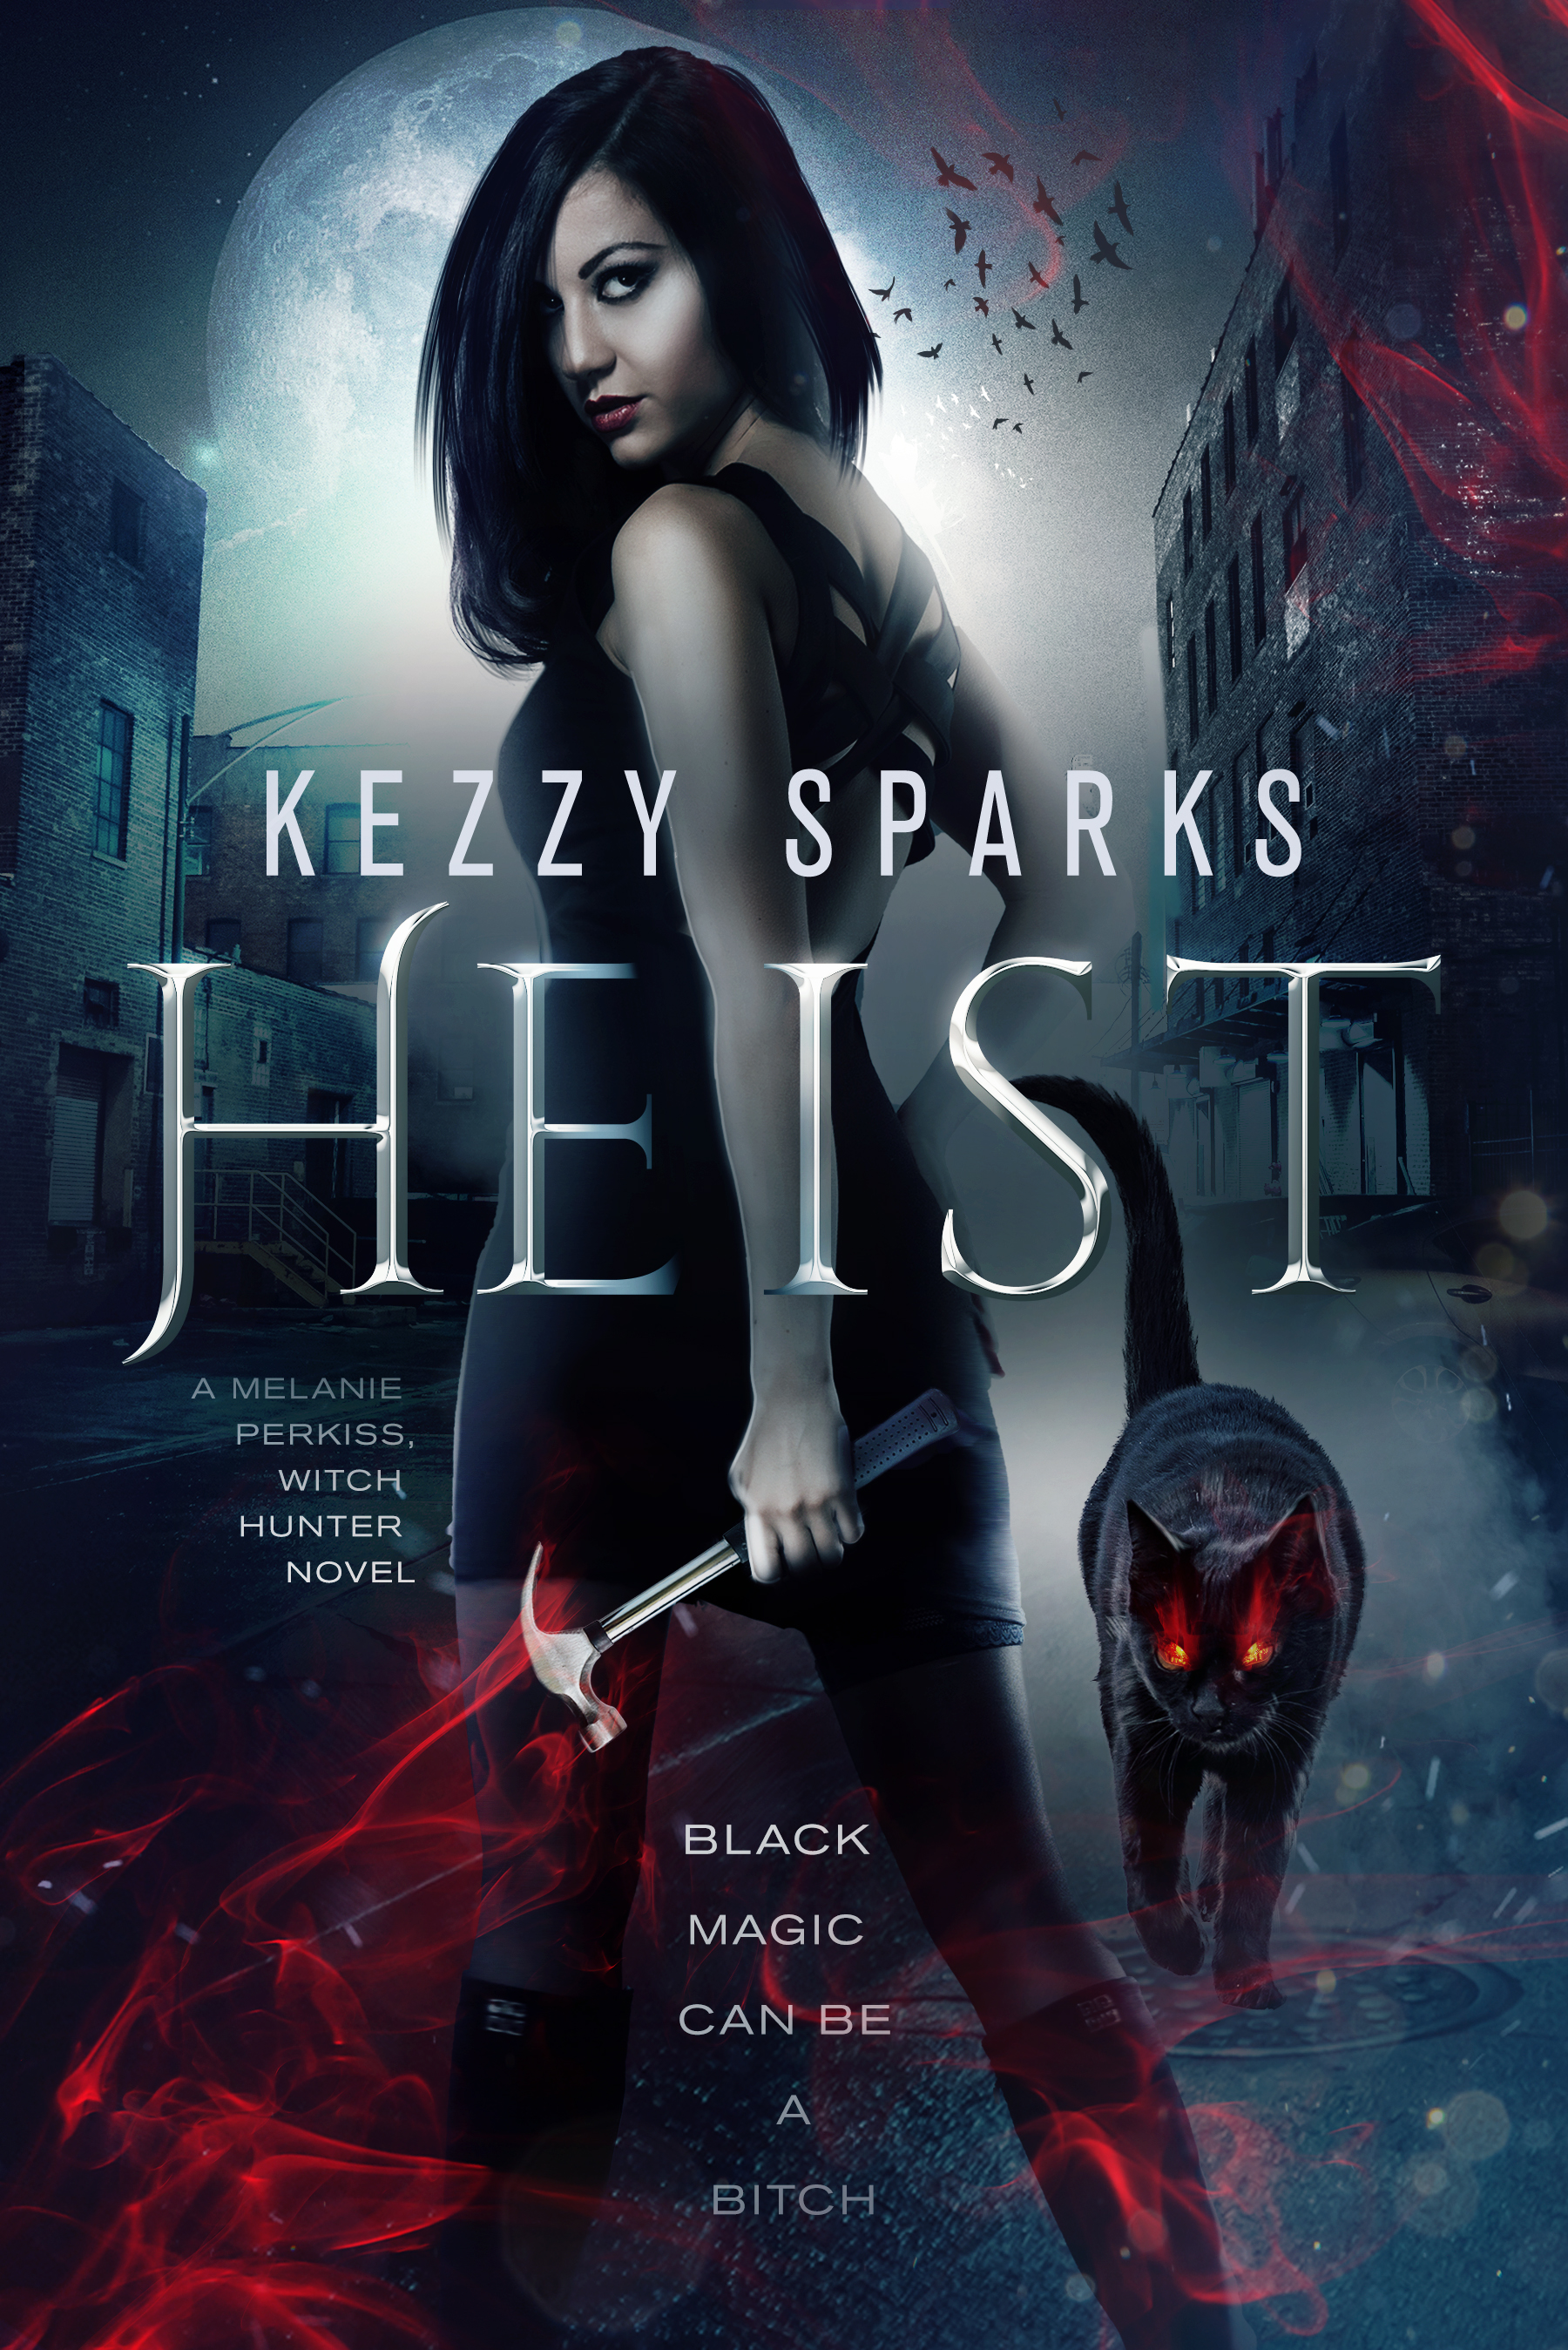 KEZZY SPARKS | An author of supernatural and paranormal